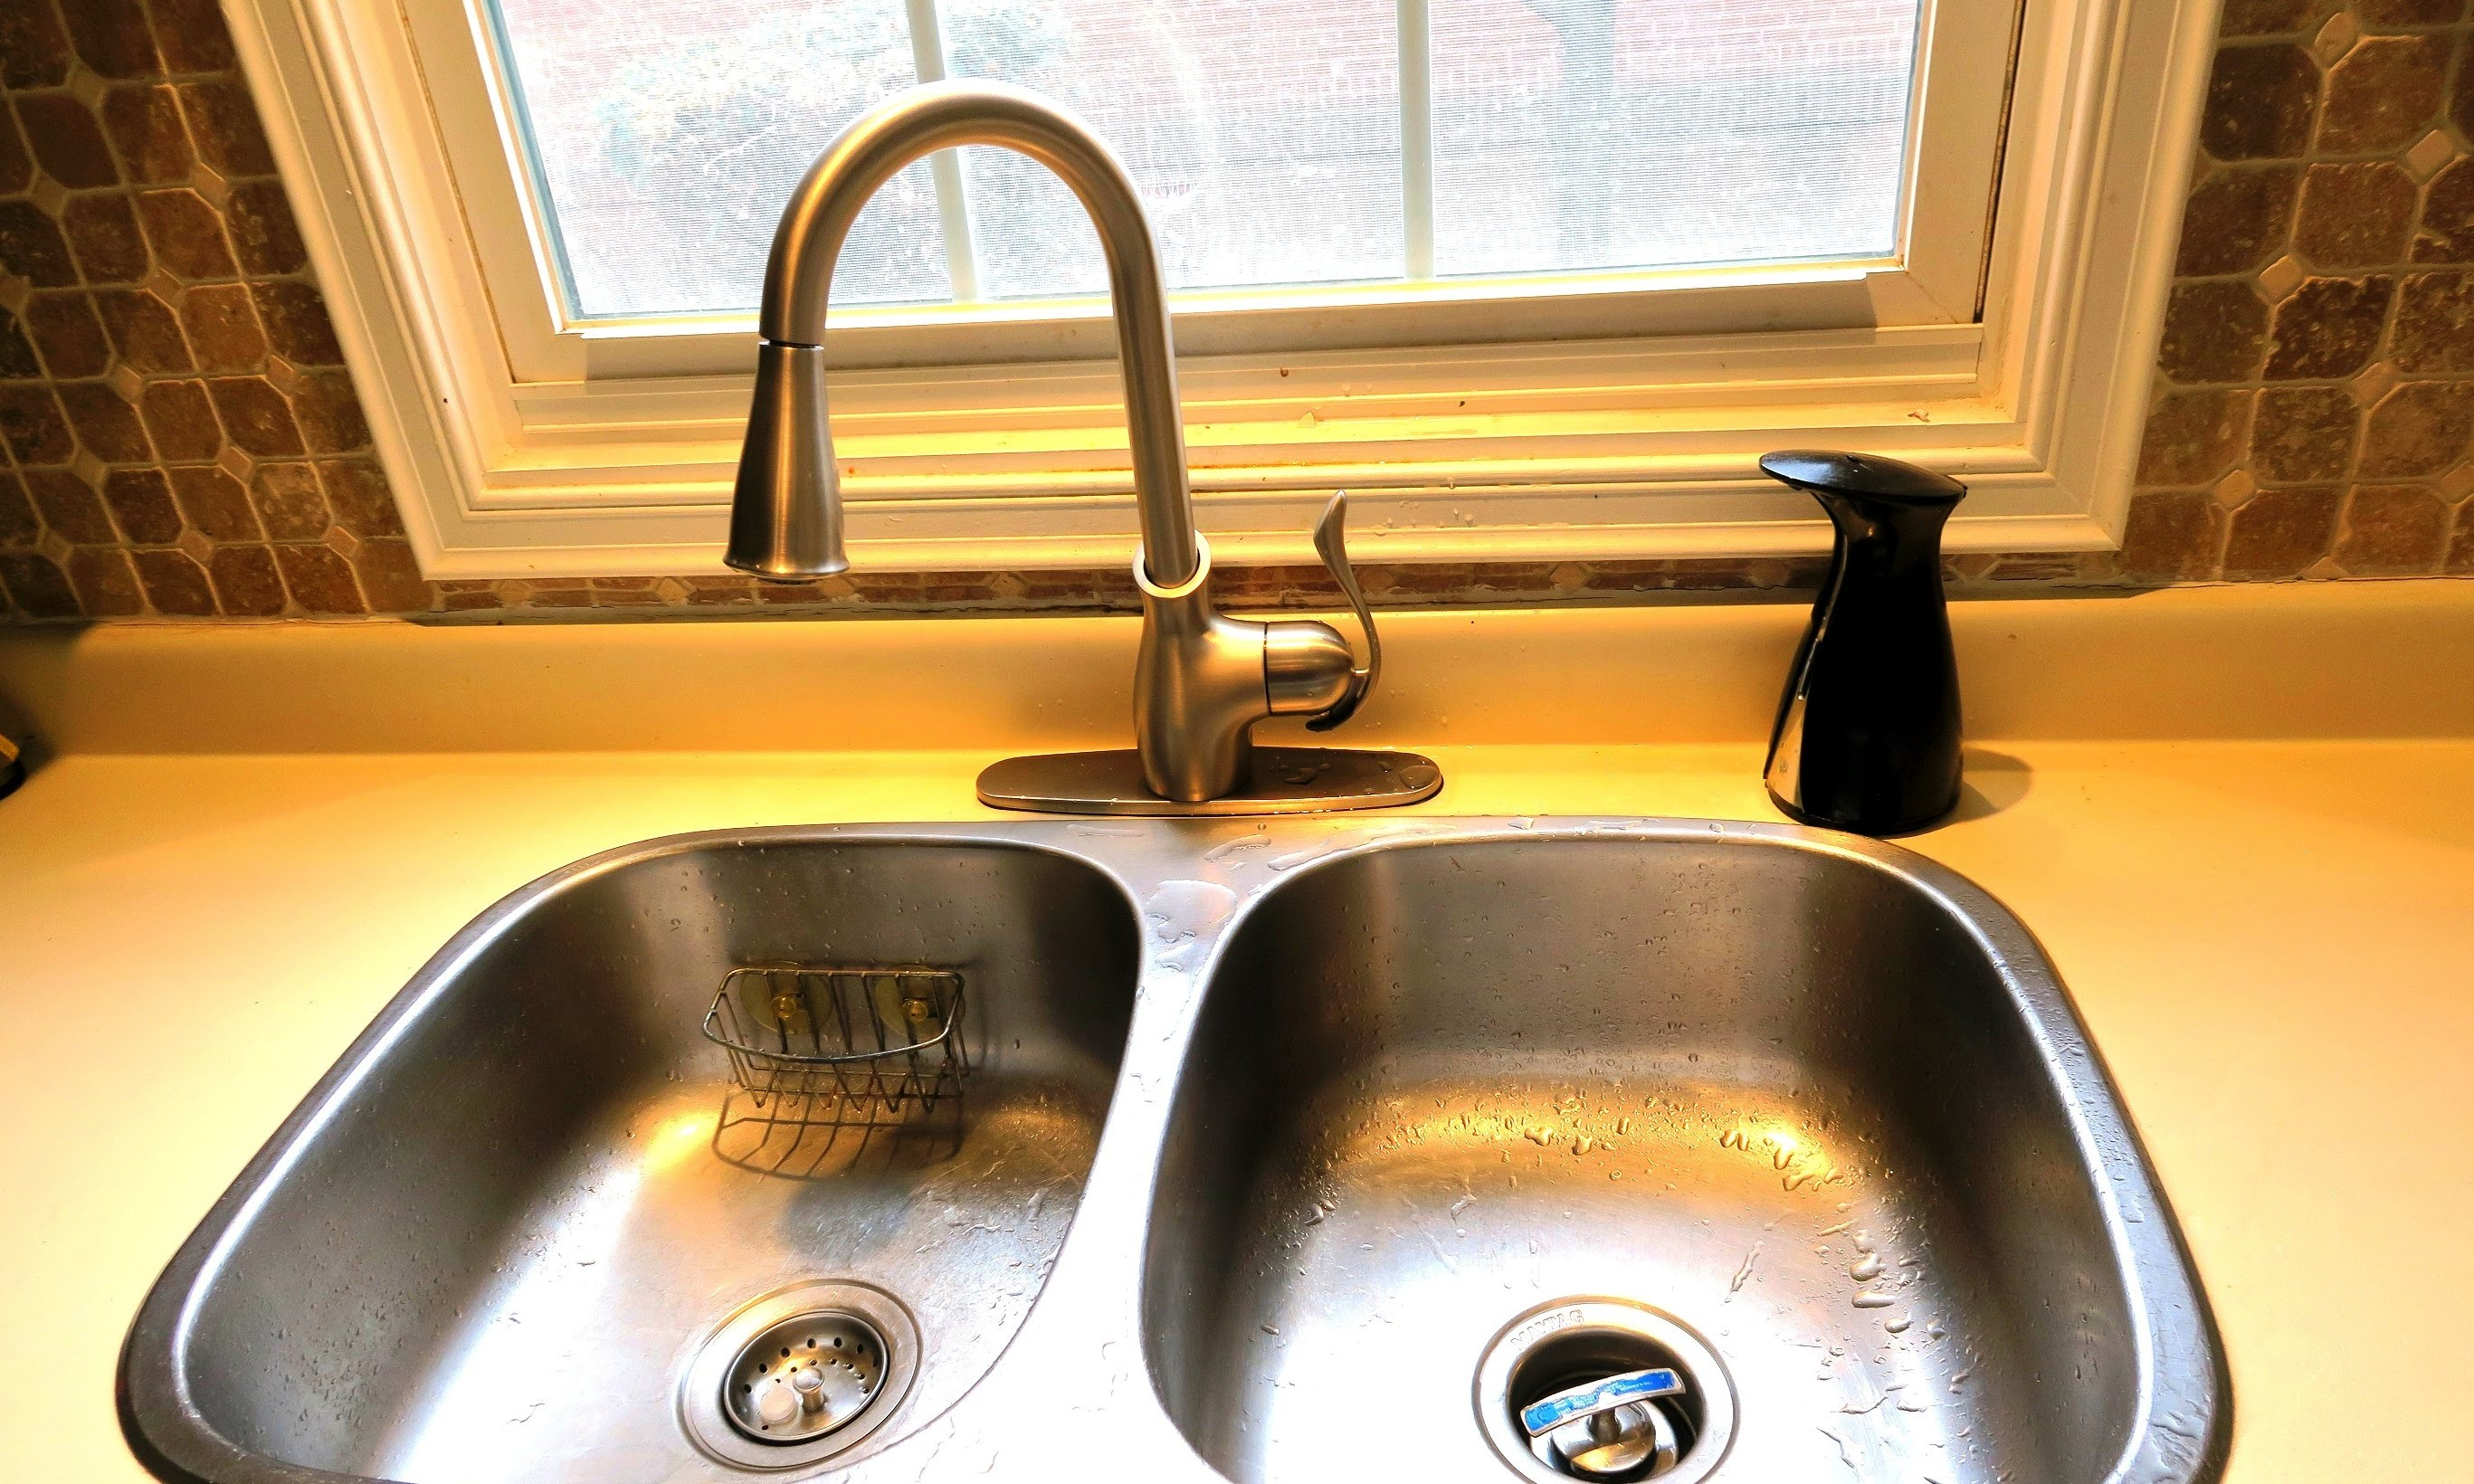 Get rid of a rusty kitchen faucet